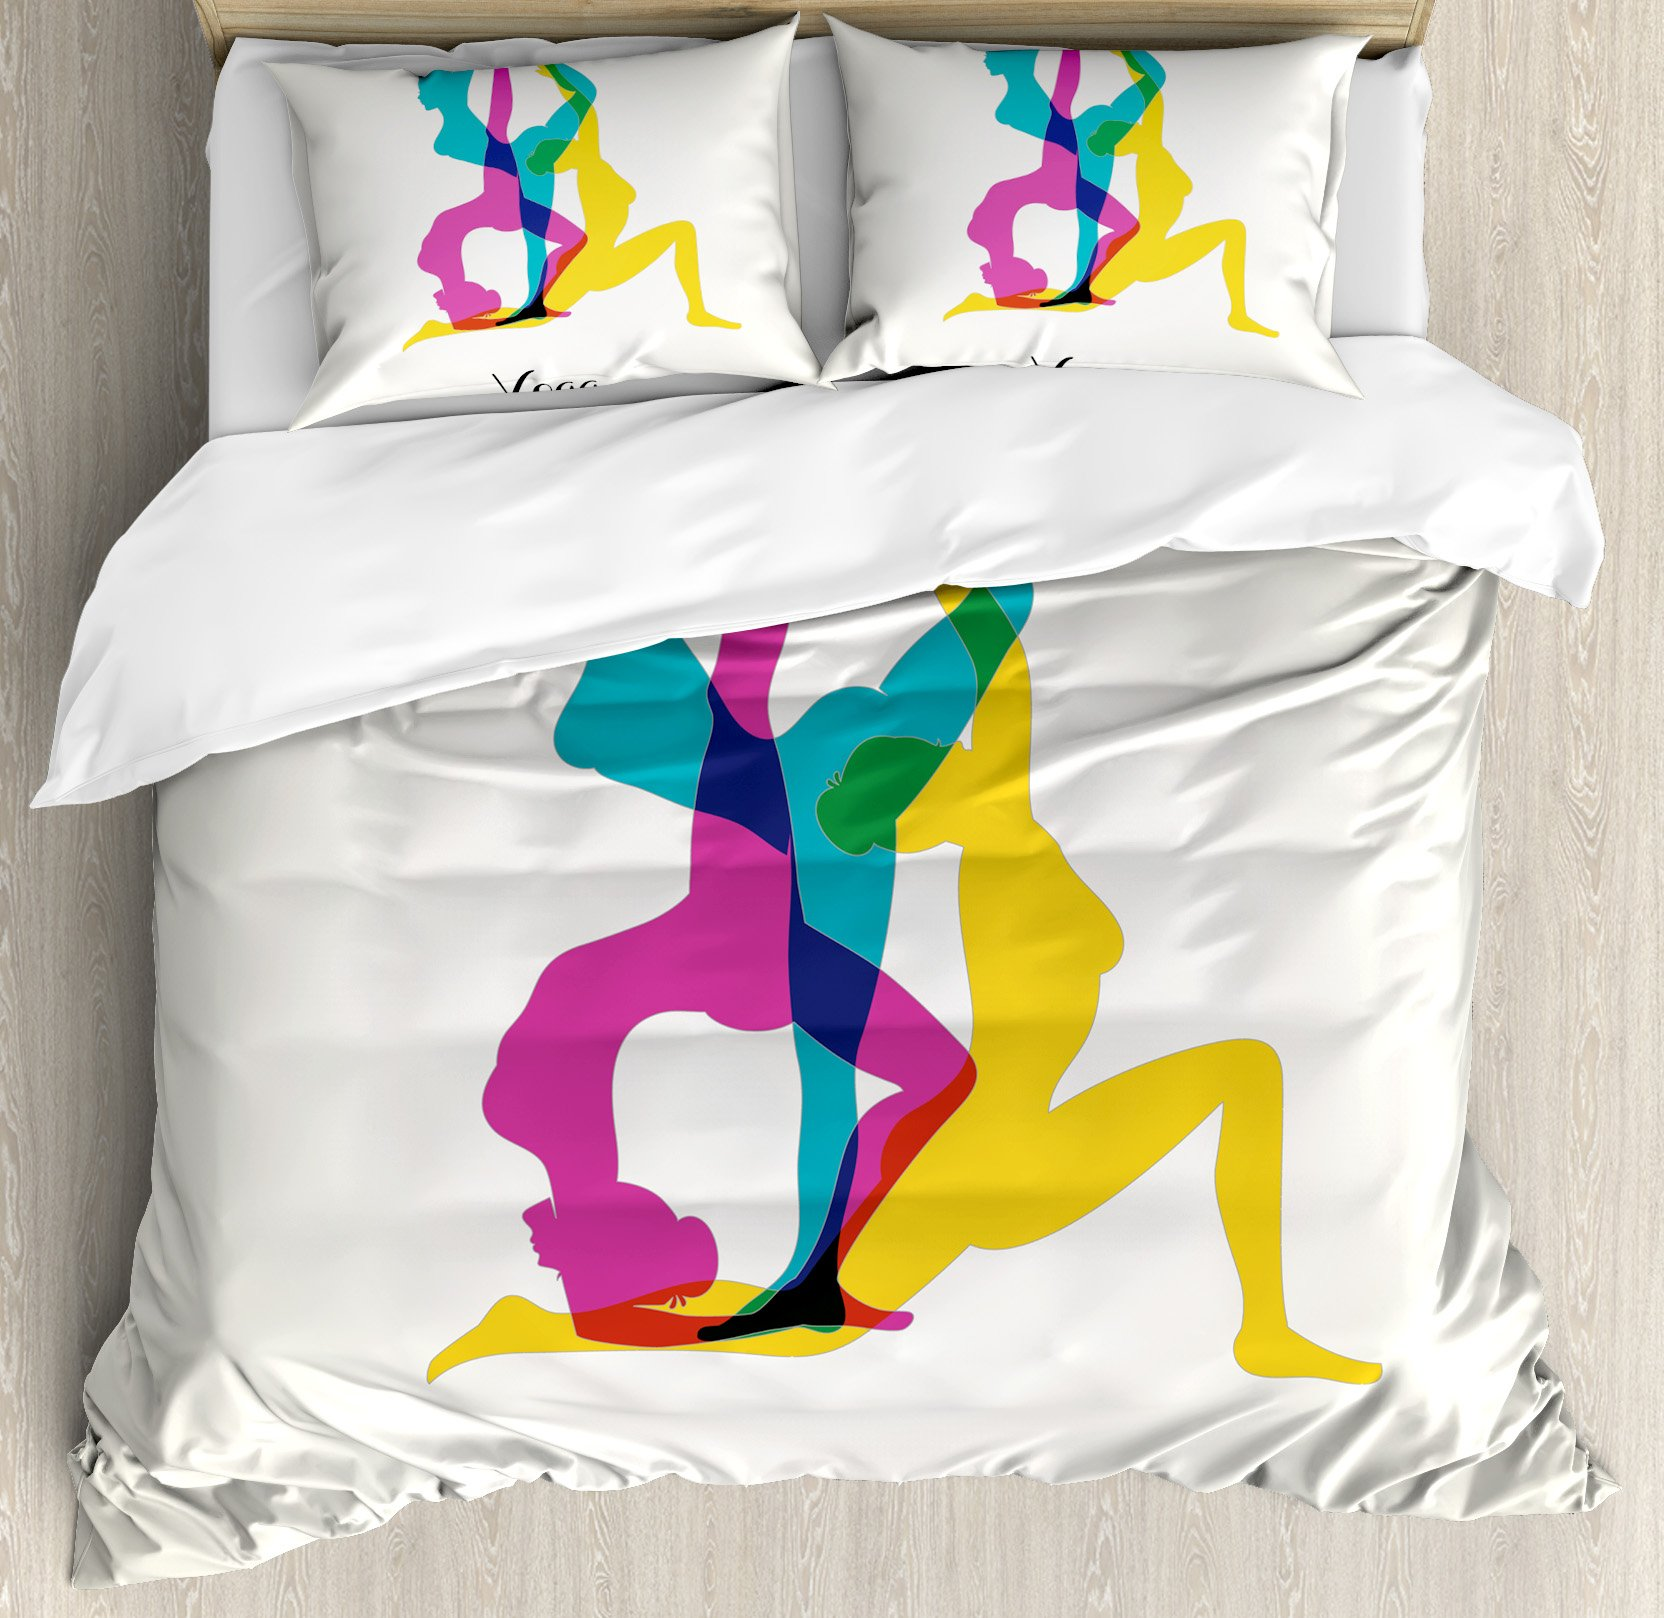 Yoga Decor Duvet Cover Set by Ambesonne, Different Yoga Poses Energetic Female in Motion Pilates Human Health Wellbeing Design, 3 Piece Bedding Set with Pillow Shams, King Size, Pink Yellow Teal